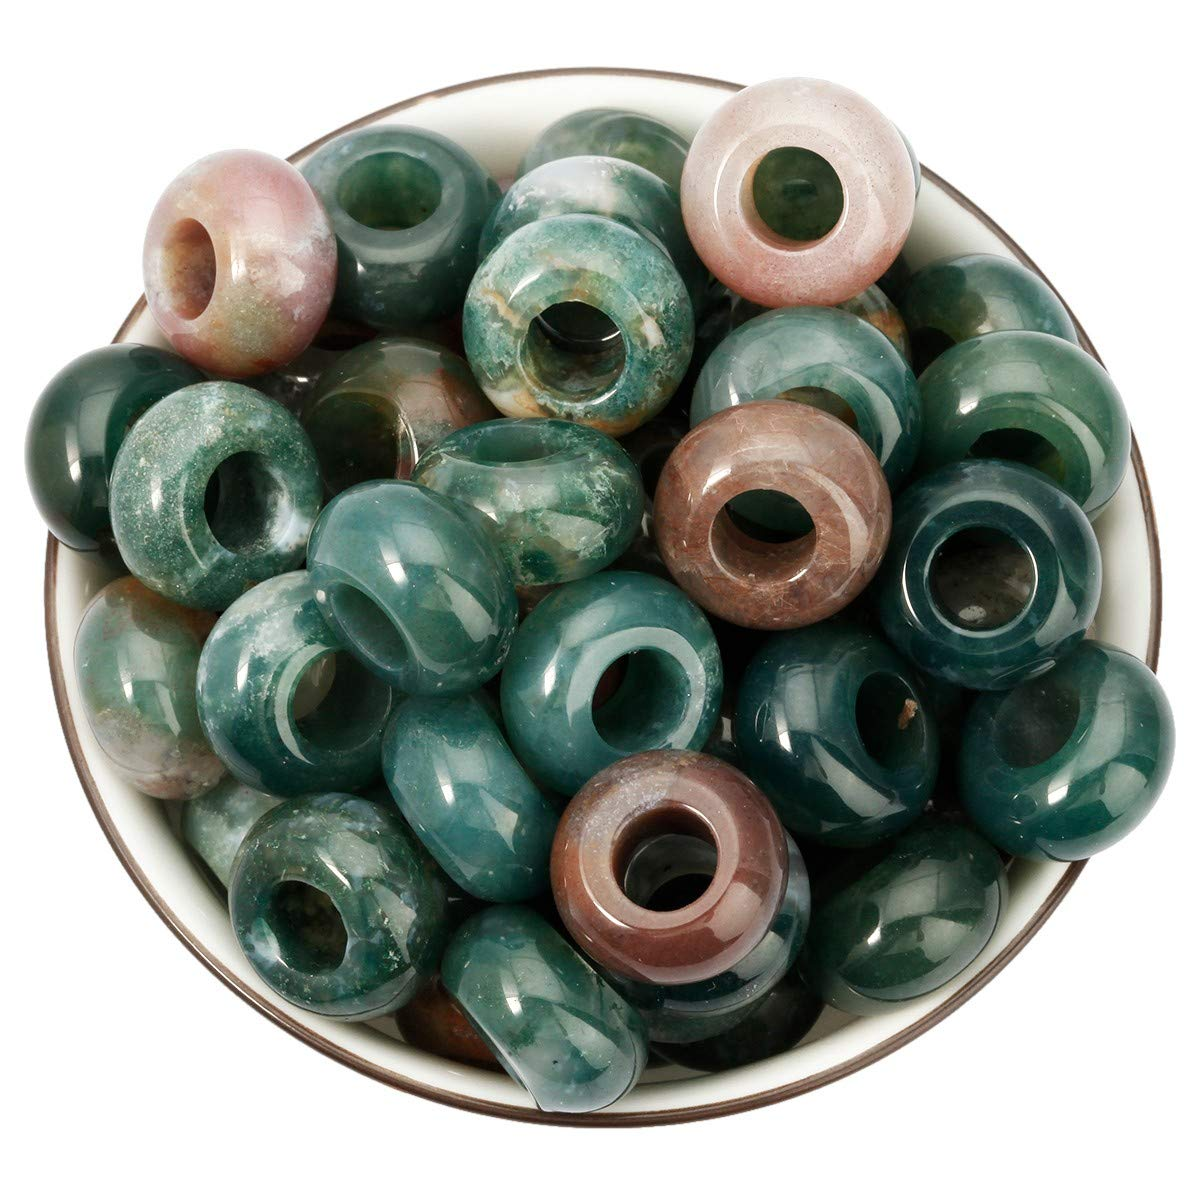 Polished Rondelle European Beads fit Charms Bracelet Nupuyai Large Hole Stone Loose Beads for Jewelry Making Pack of 30